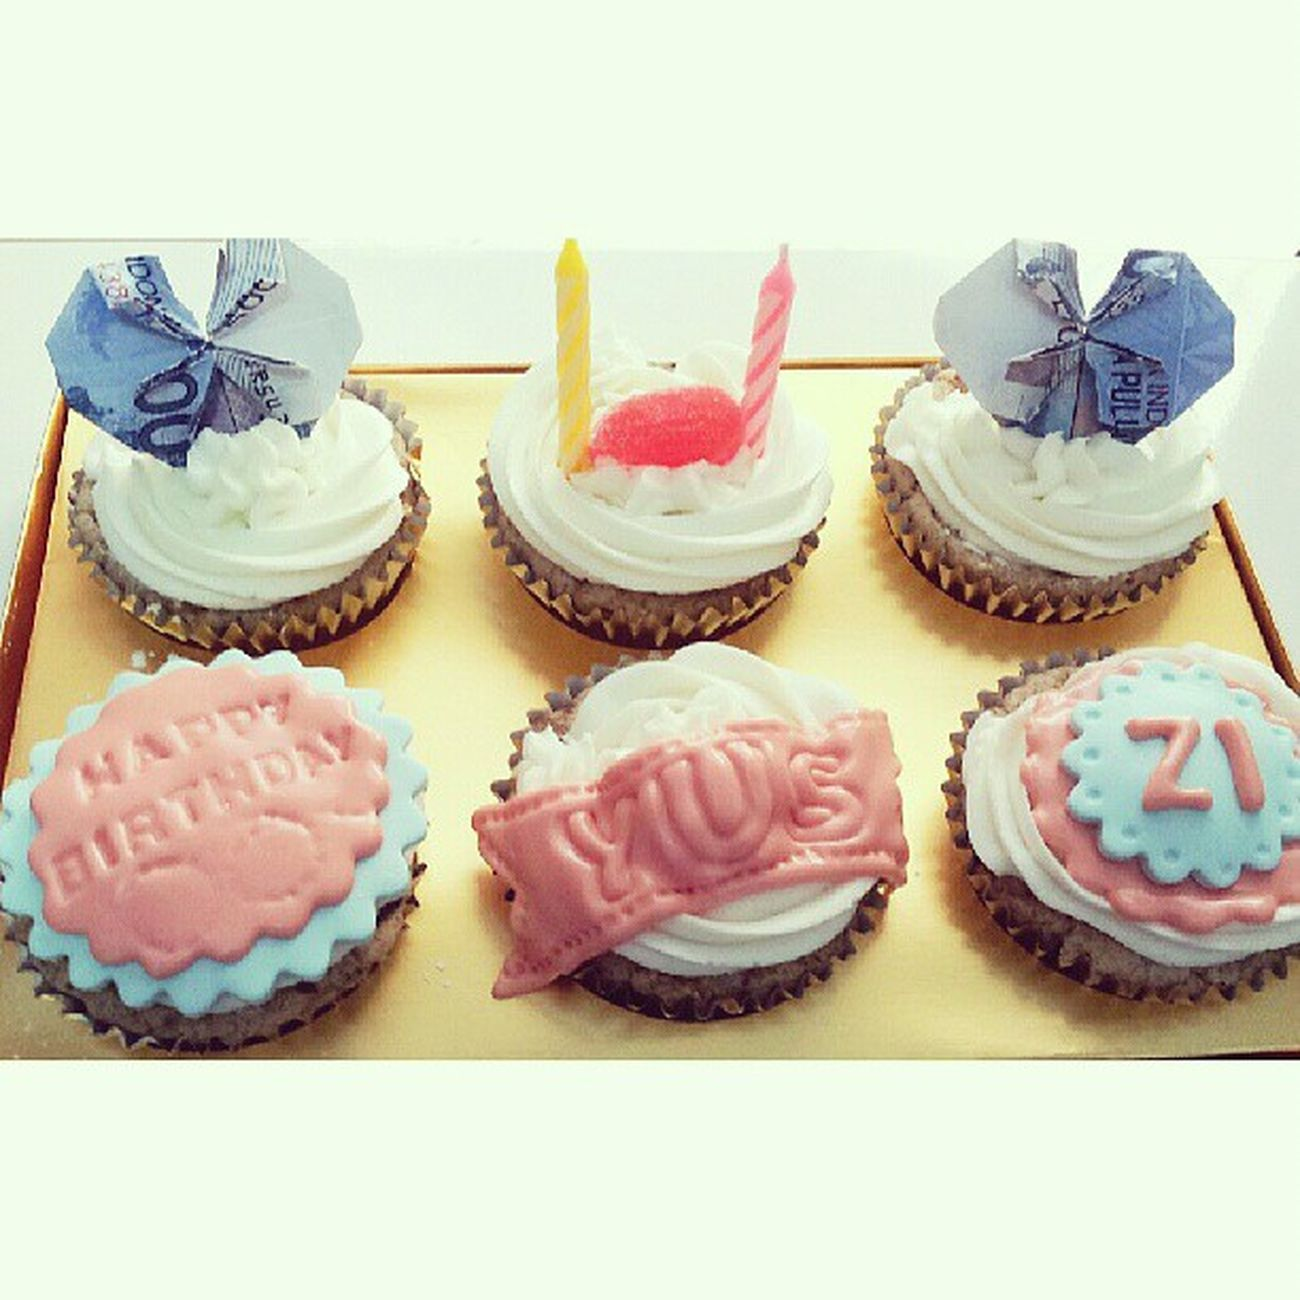 Birthday Cupcakes *yus*, lovely 50k money paper as topping! Babiefabulouscakes Ccupcakesdaily Sweetcakes ILikeYou ig potd birthdaycupcakes cupcakestyle cupcakestagram